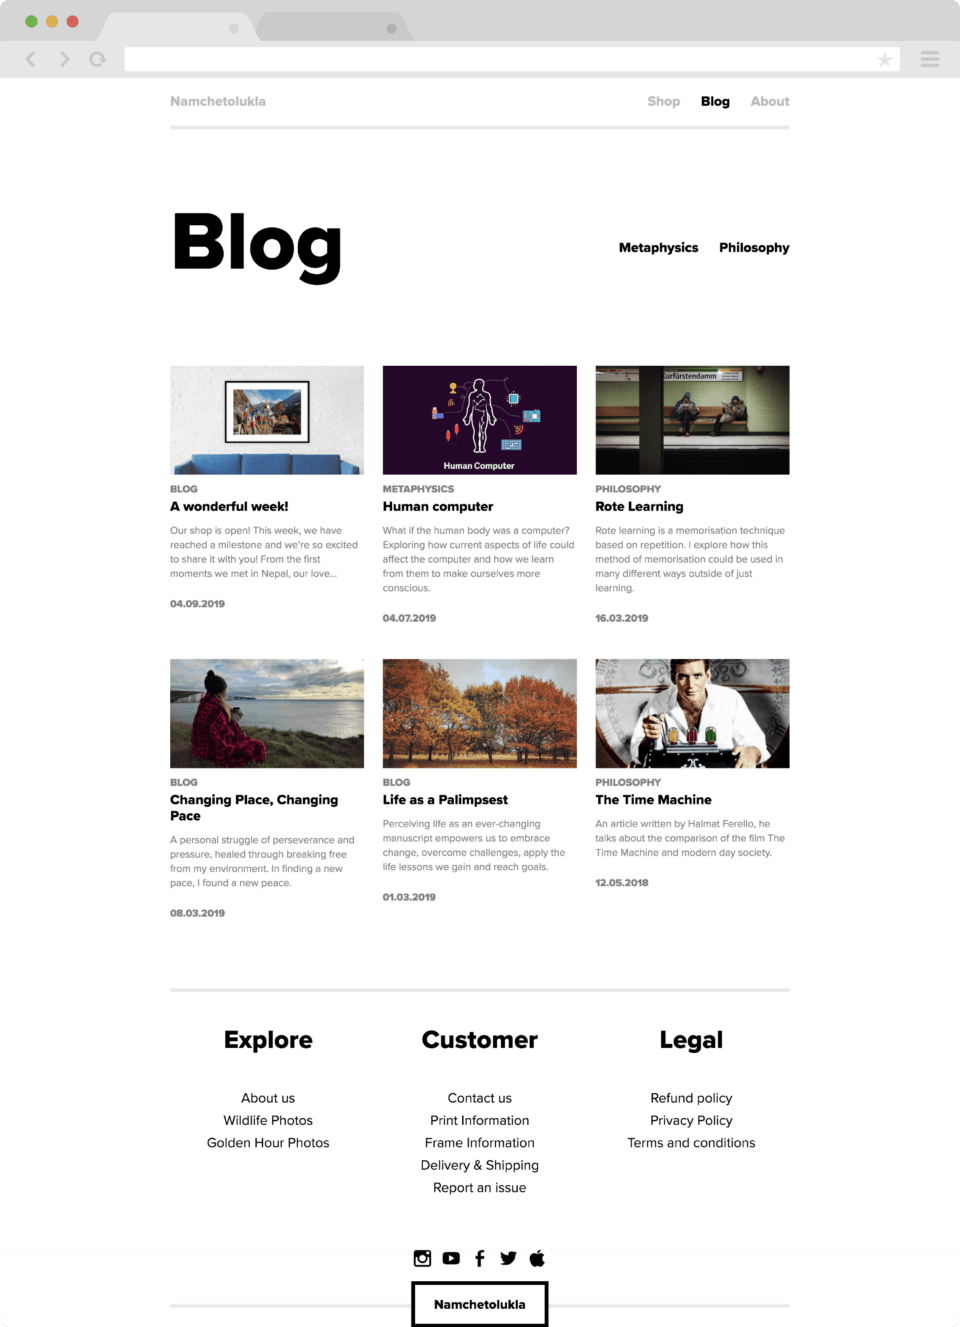 Blog section page